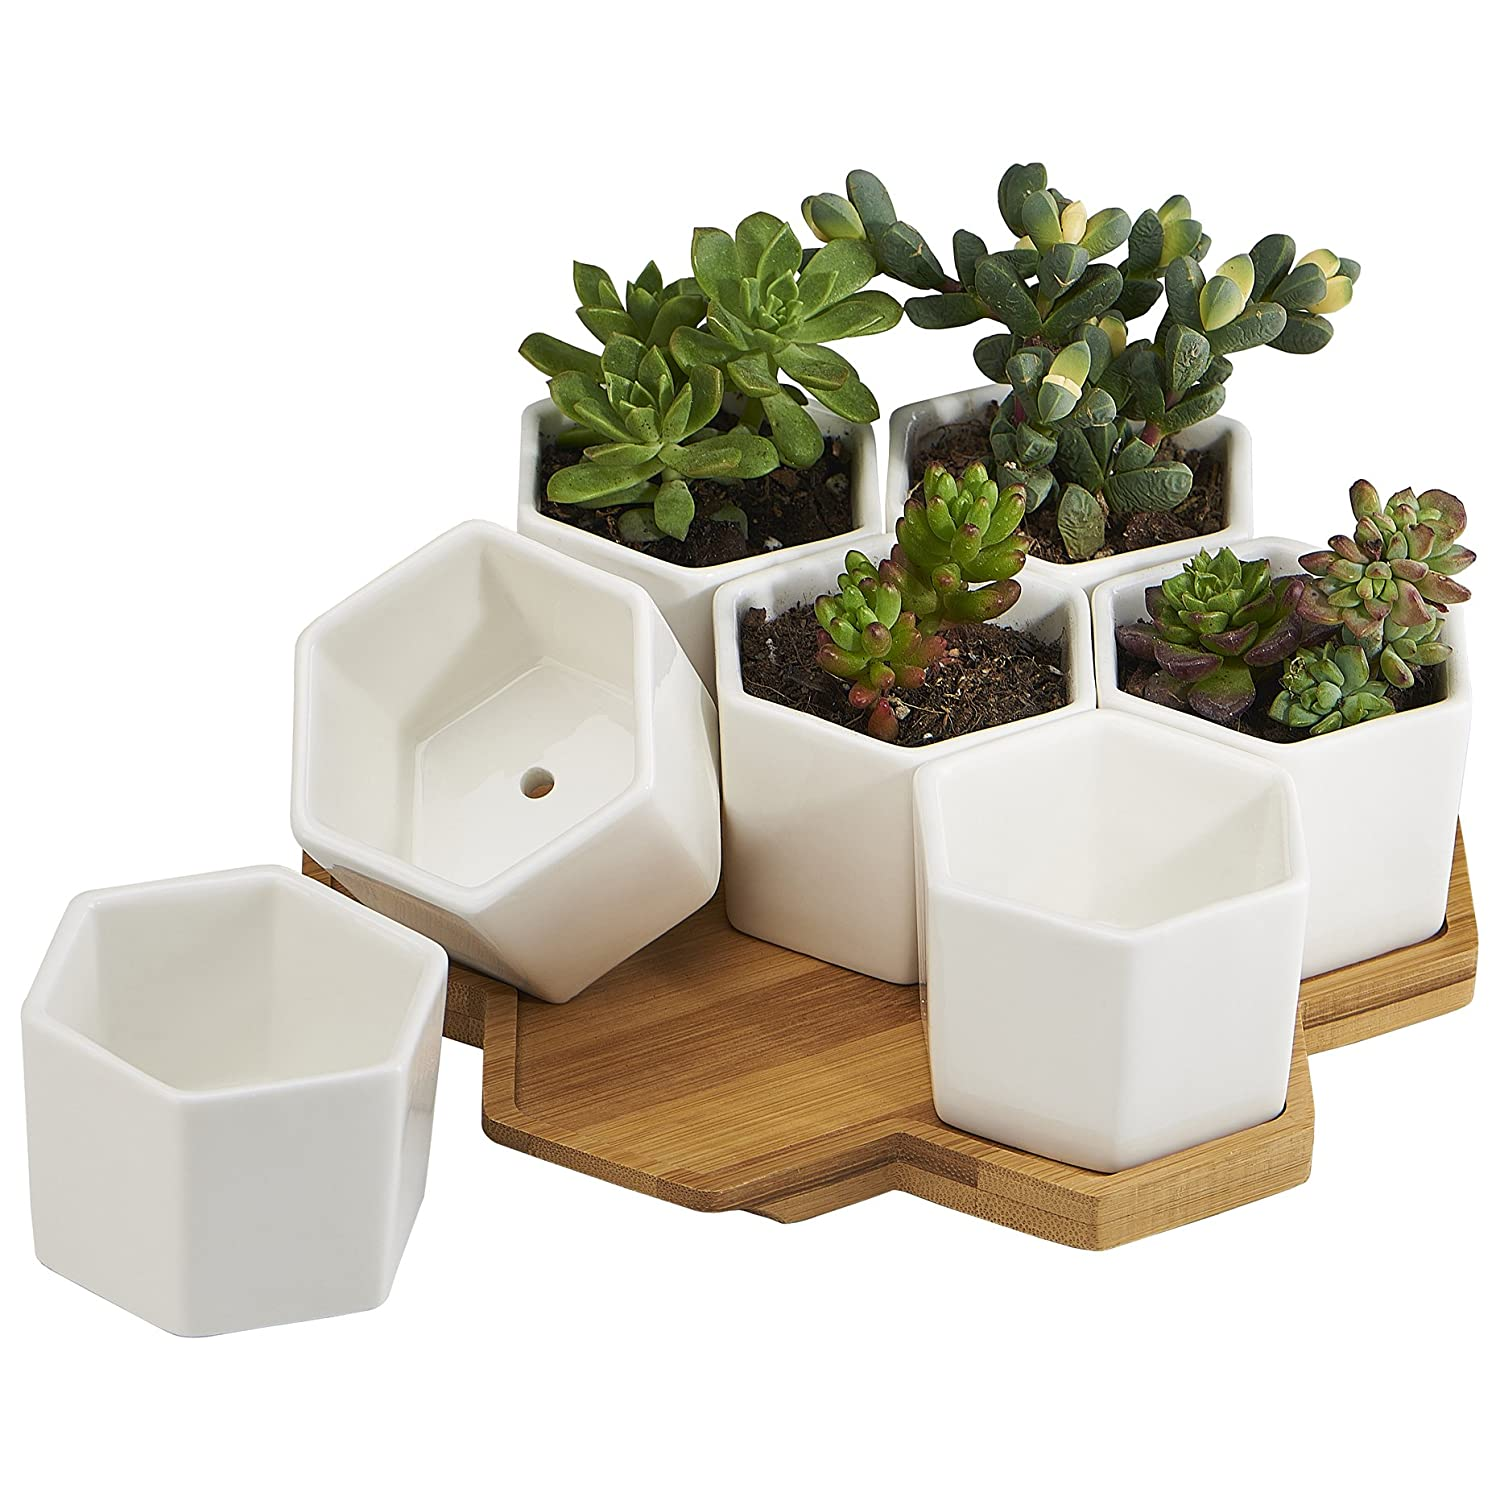 FLOWERPLUS Planter Pots Indoor, 7 Pack 2.75 Inch Modern White Ceramic Small Hex Succulent Cactus Flower Plant Pot with Bamboo Tray for Indoors Outdoor Office Home Garden Kitchen Decor (Hexagon)